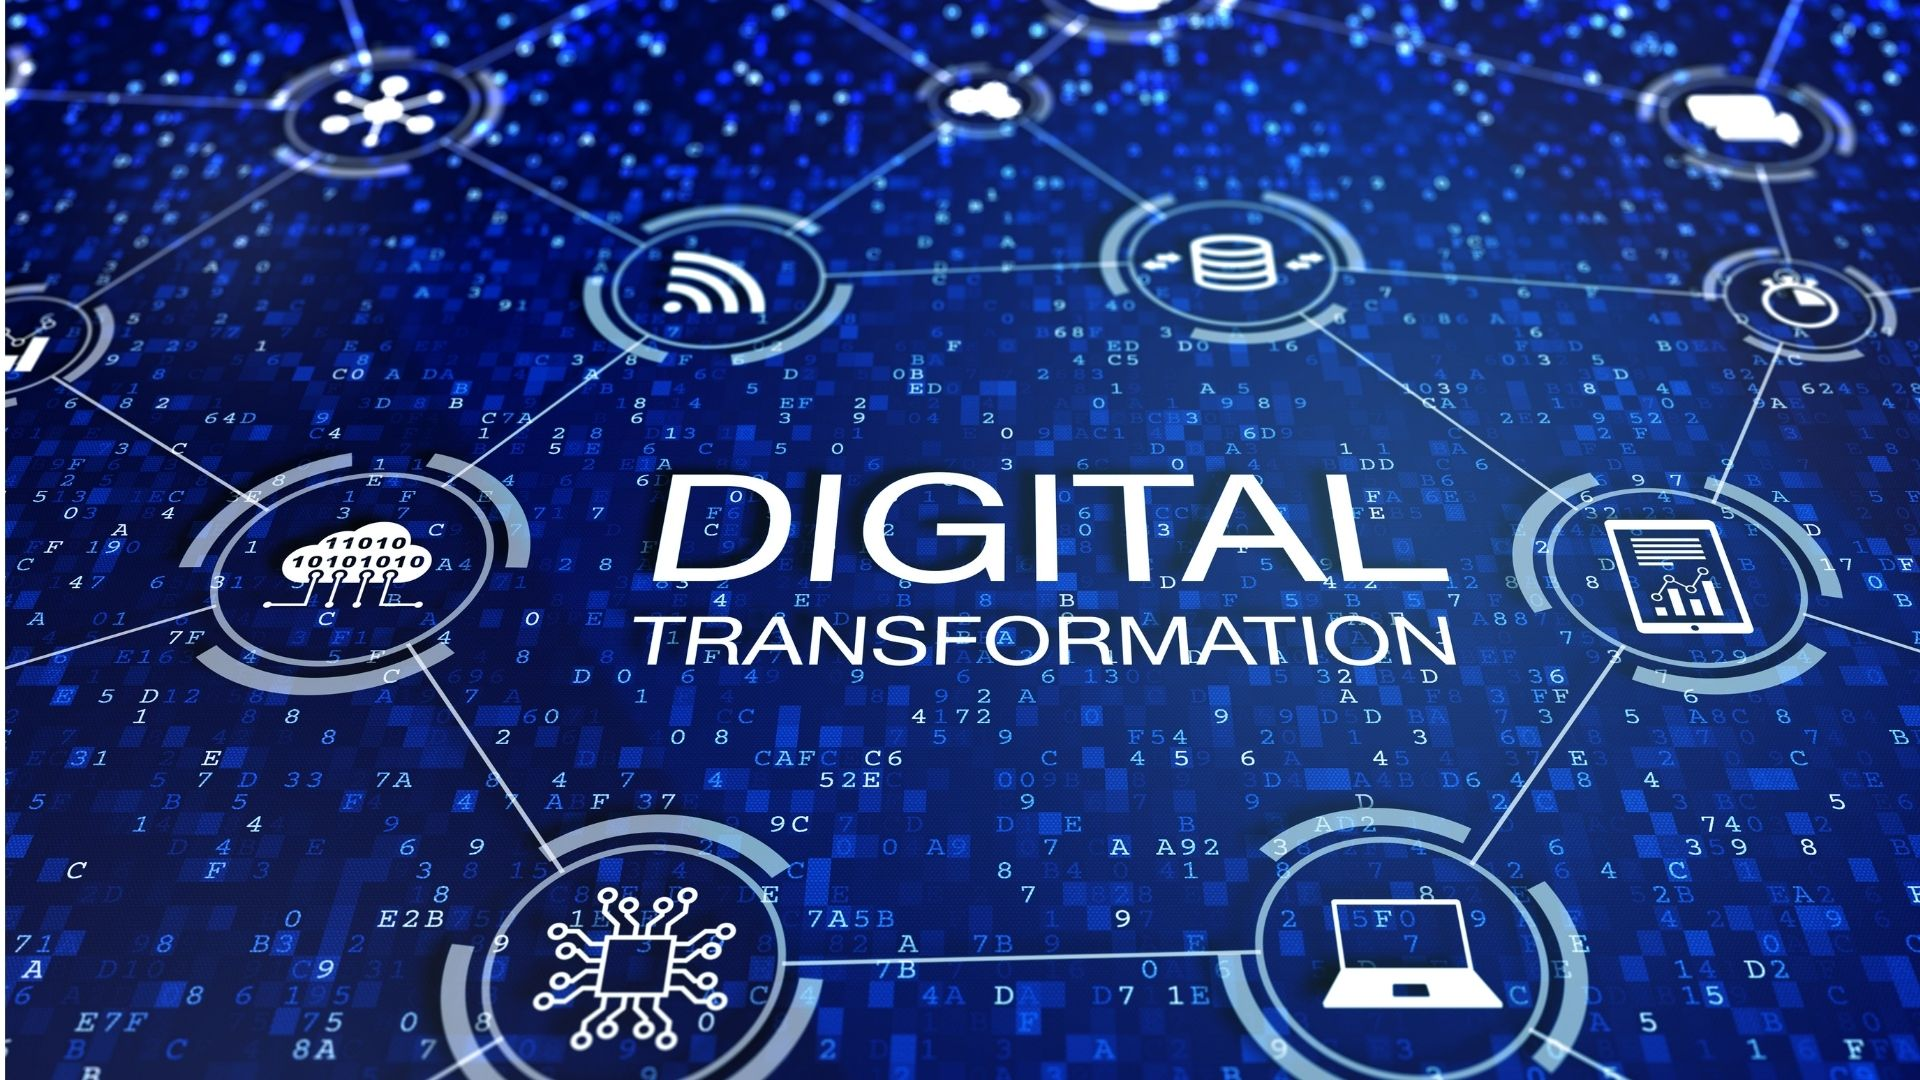 How Are Governments Going Under Digital Transformation & Its Benefits? - thumb image